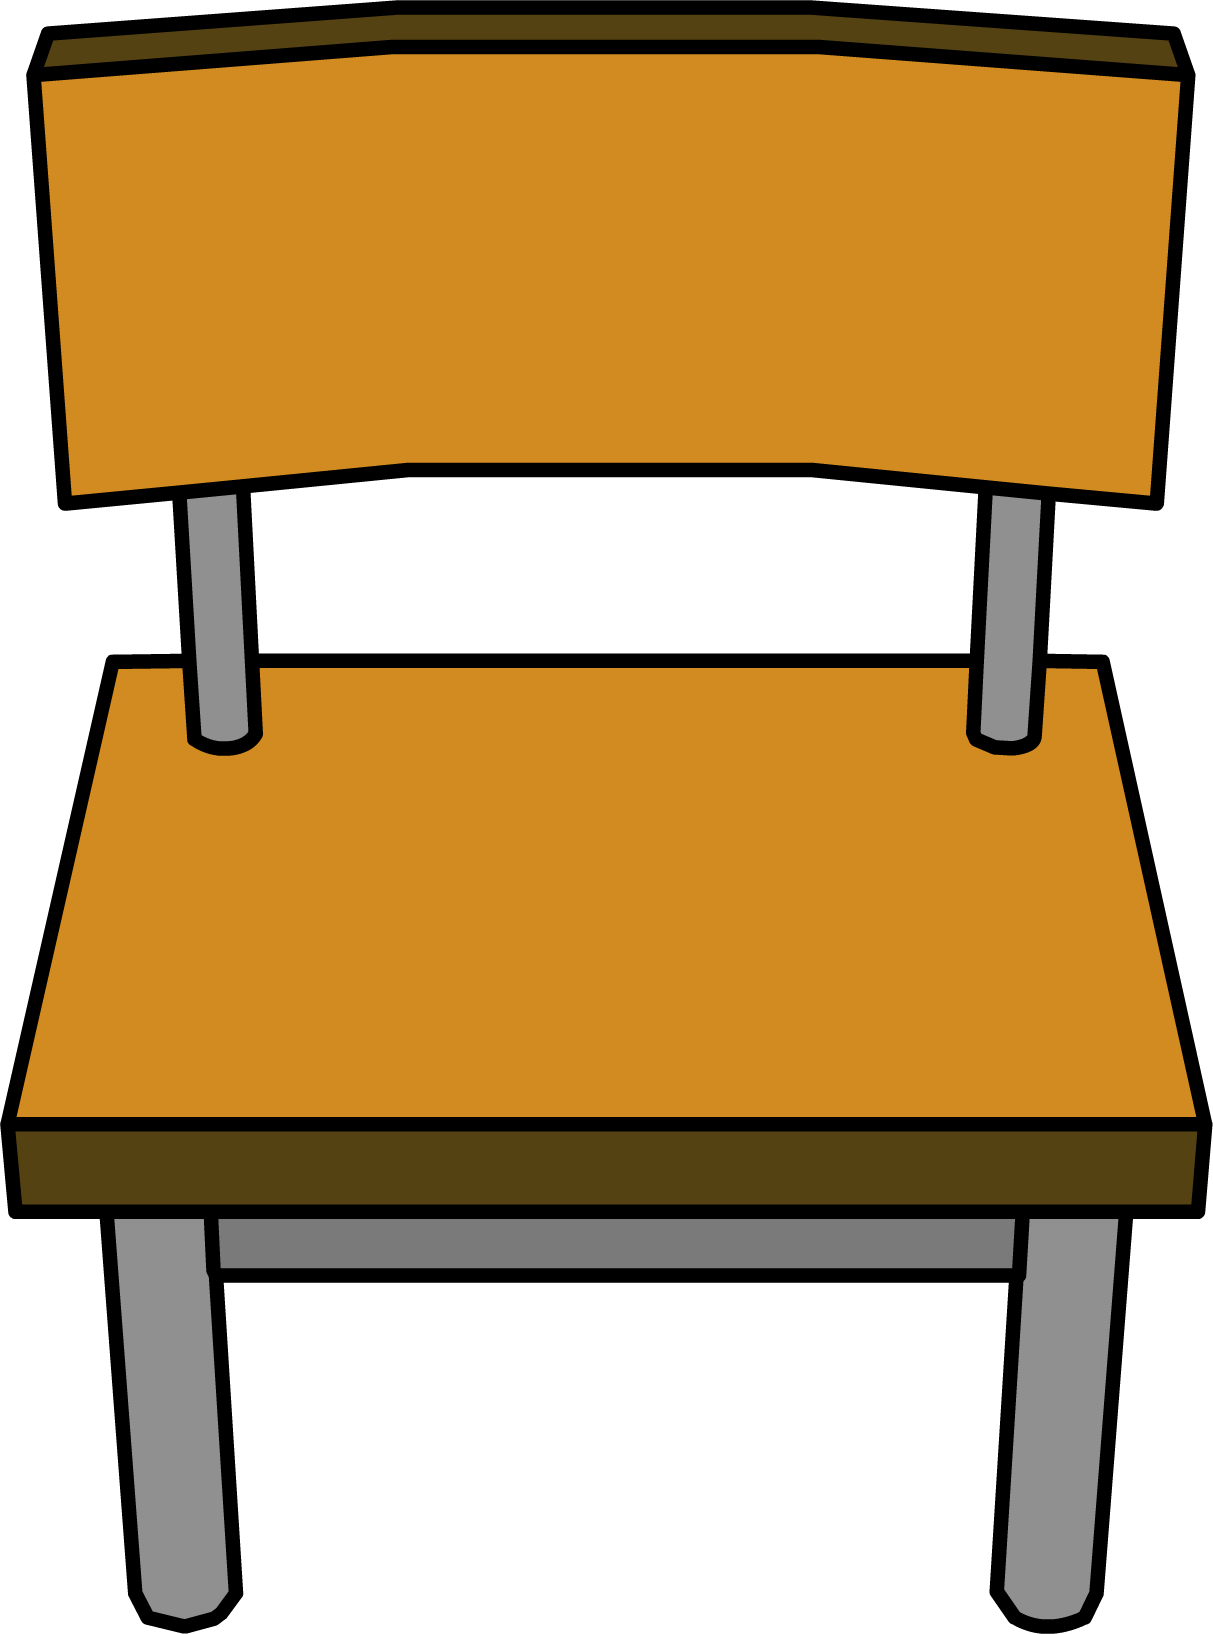 Classroom Chair Club Penguin Wiki